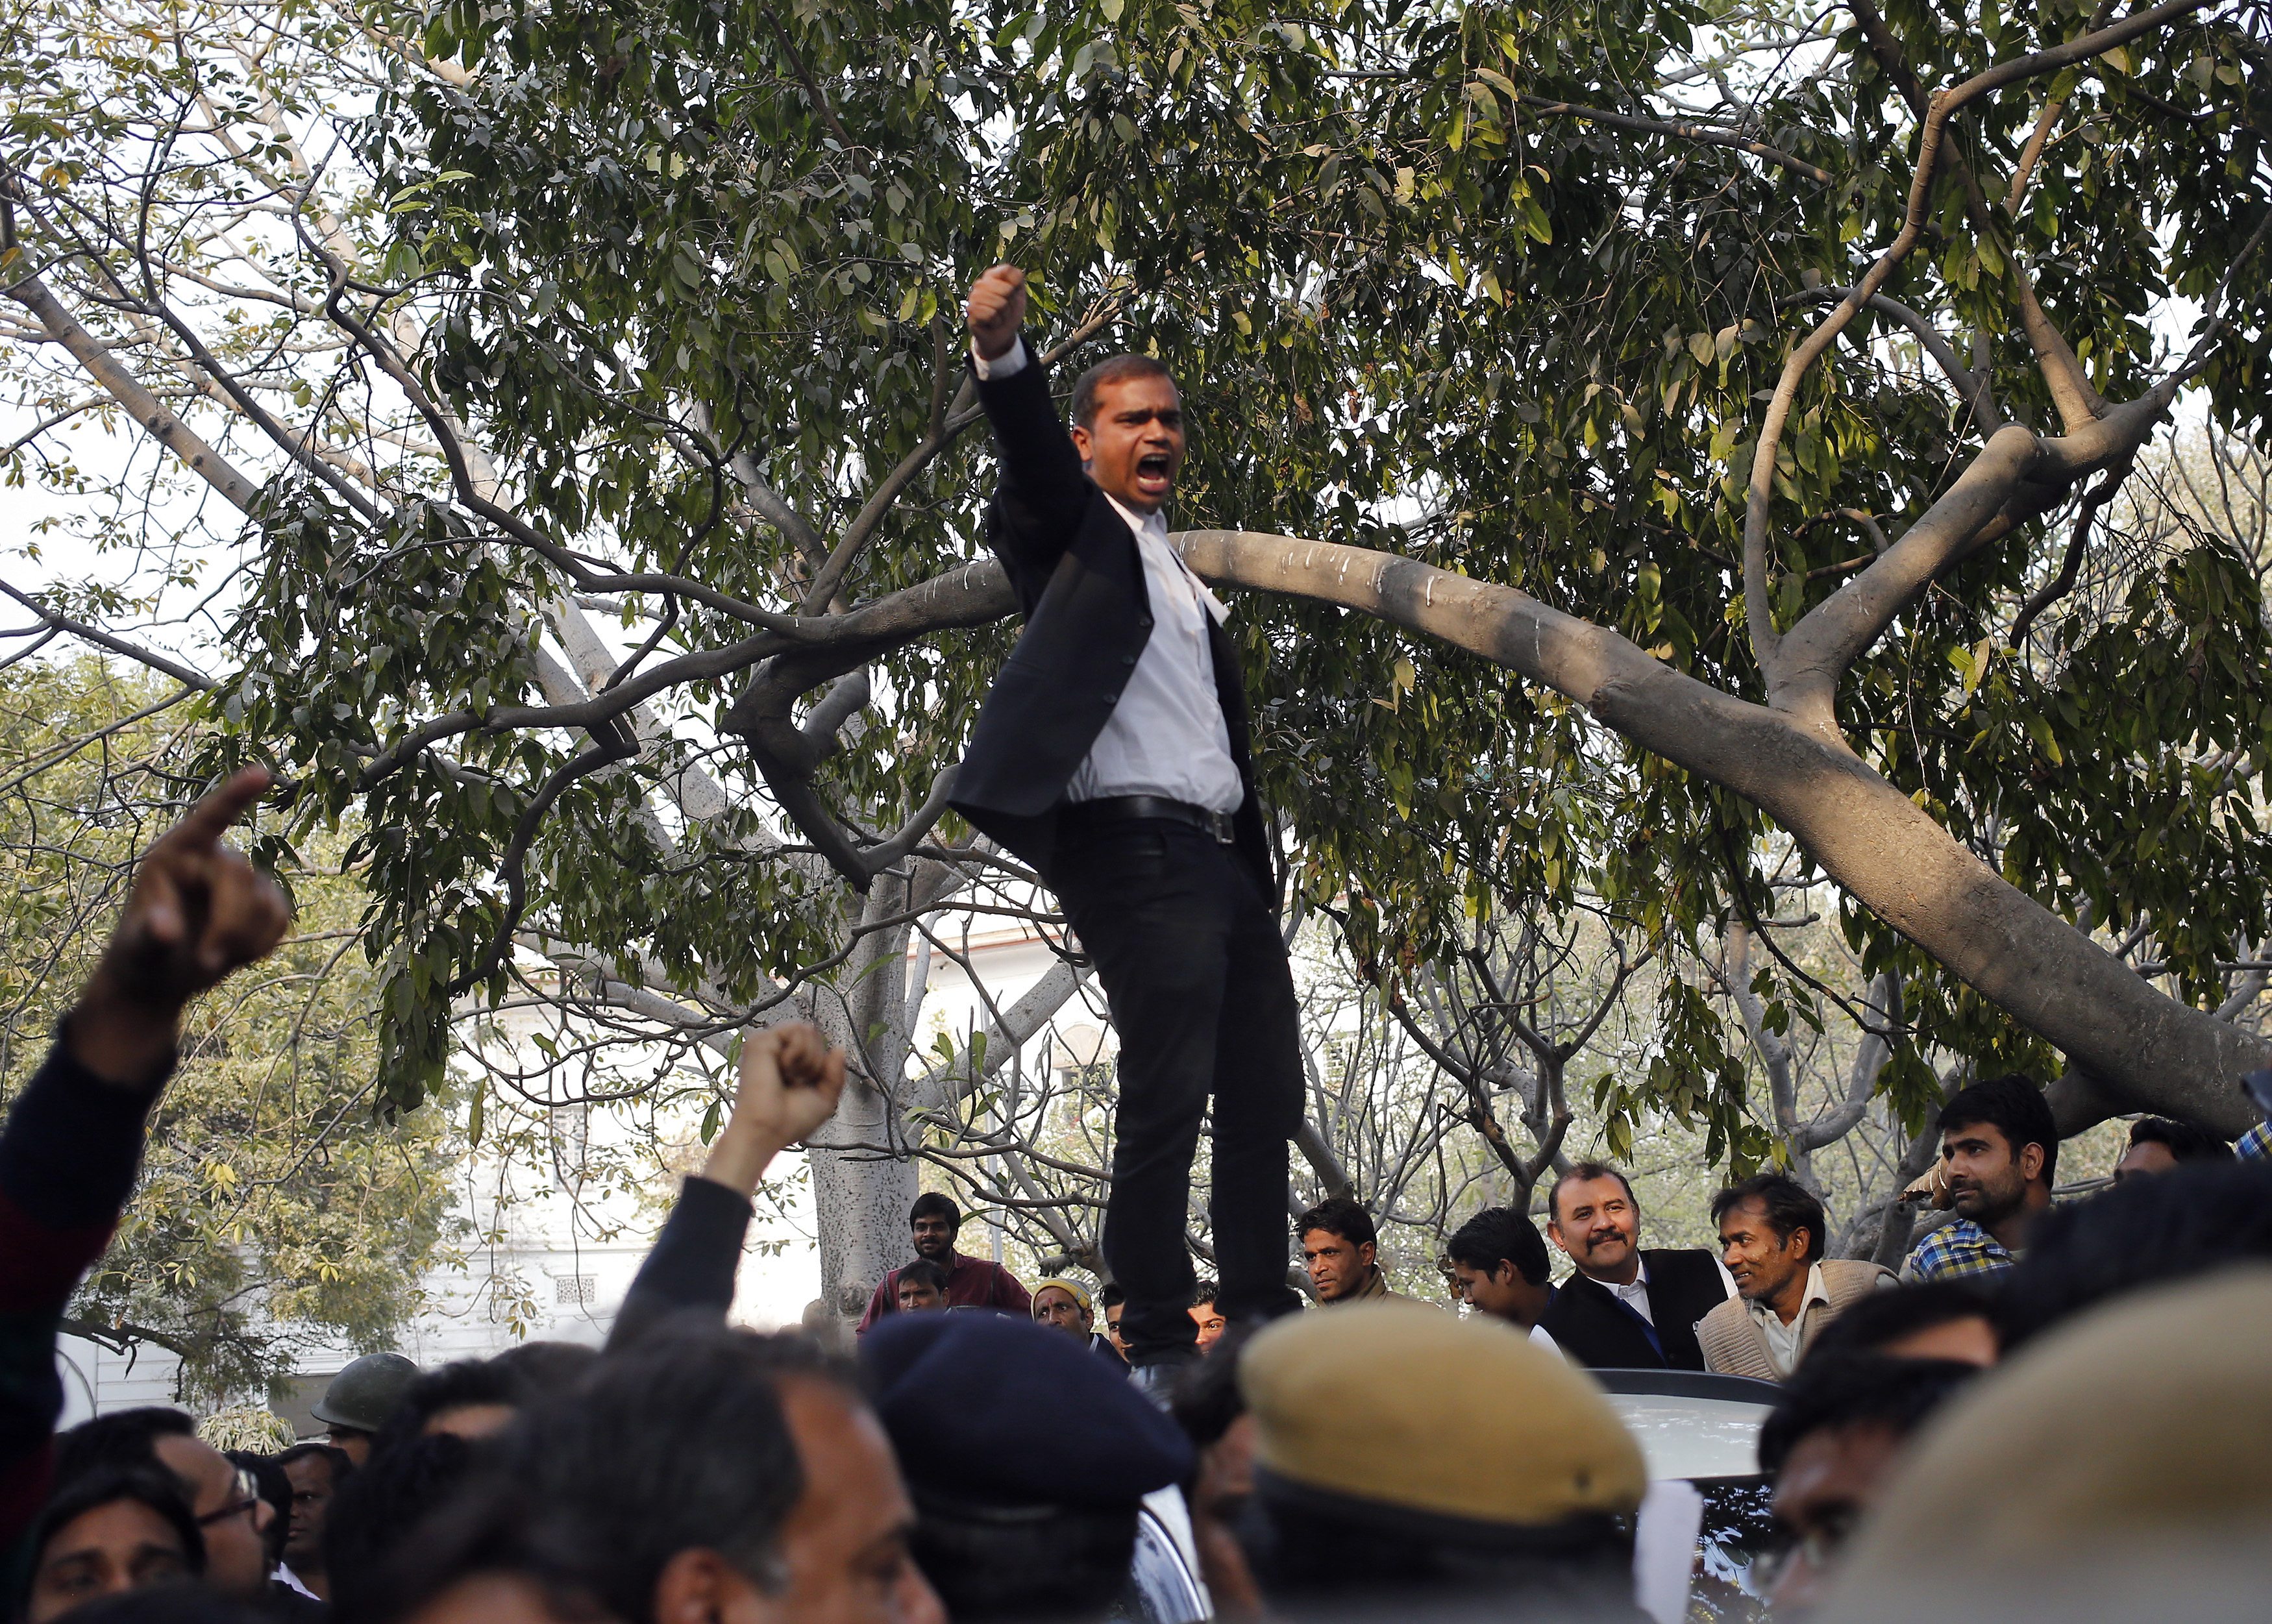 A lawyer shouts slogans during a protest outside the Patiala House court in New Delhi, India. February 17, 2016. Fighting broke out on Wednesday around Delhi's Patiala House court hearing a case against a Jawaharlal Nehru University student union leader accused of sedition, a charge that has sparked protests across university campuses and criticism the government was curtailing free speech. REUTERS/Anindito Mukherjee - RTX27CD1